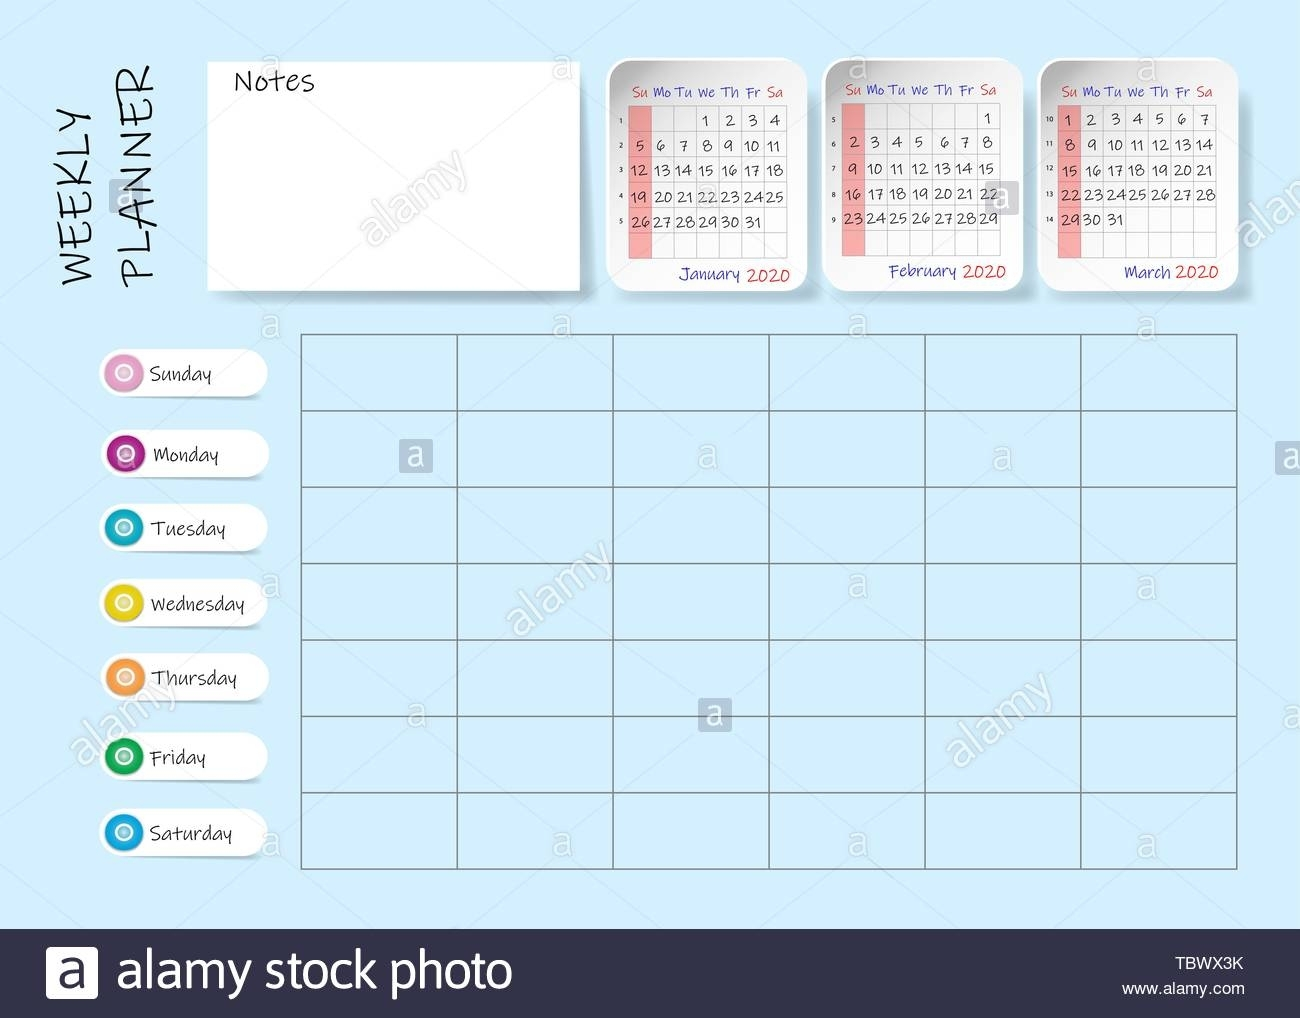 Calendar For First Quarter Of 2020 Year With Weekly Planner